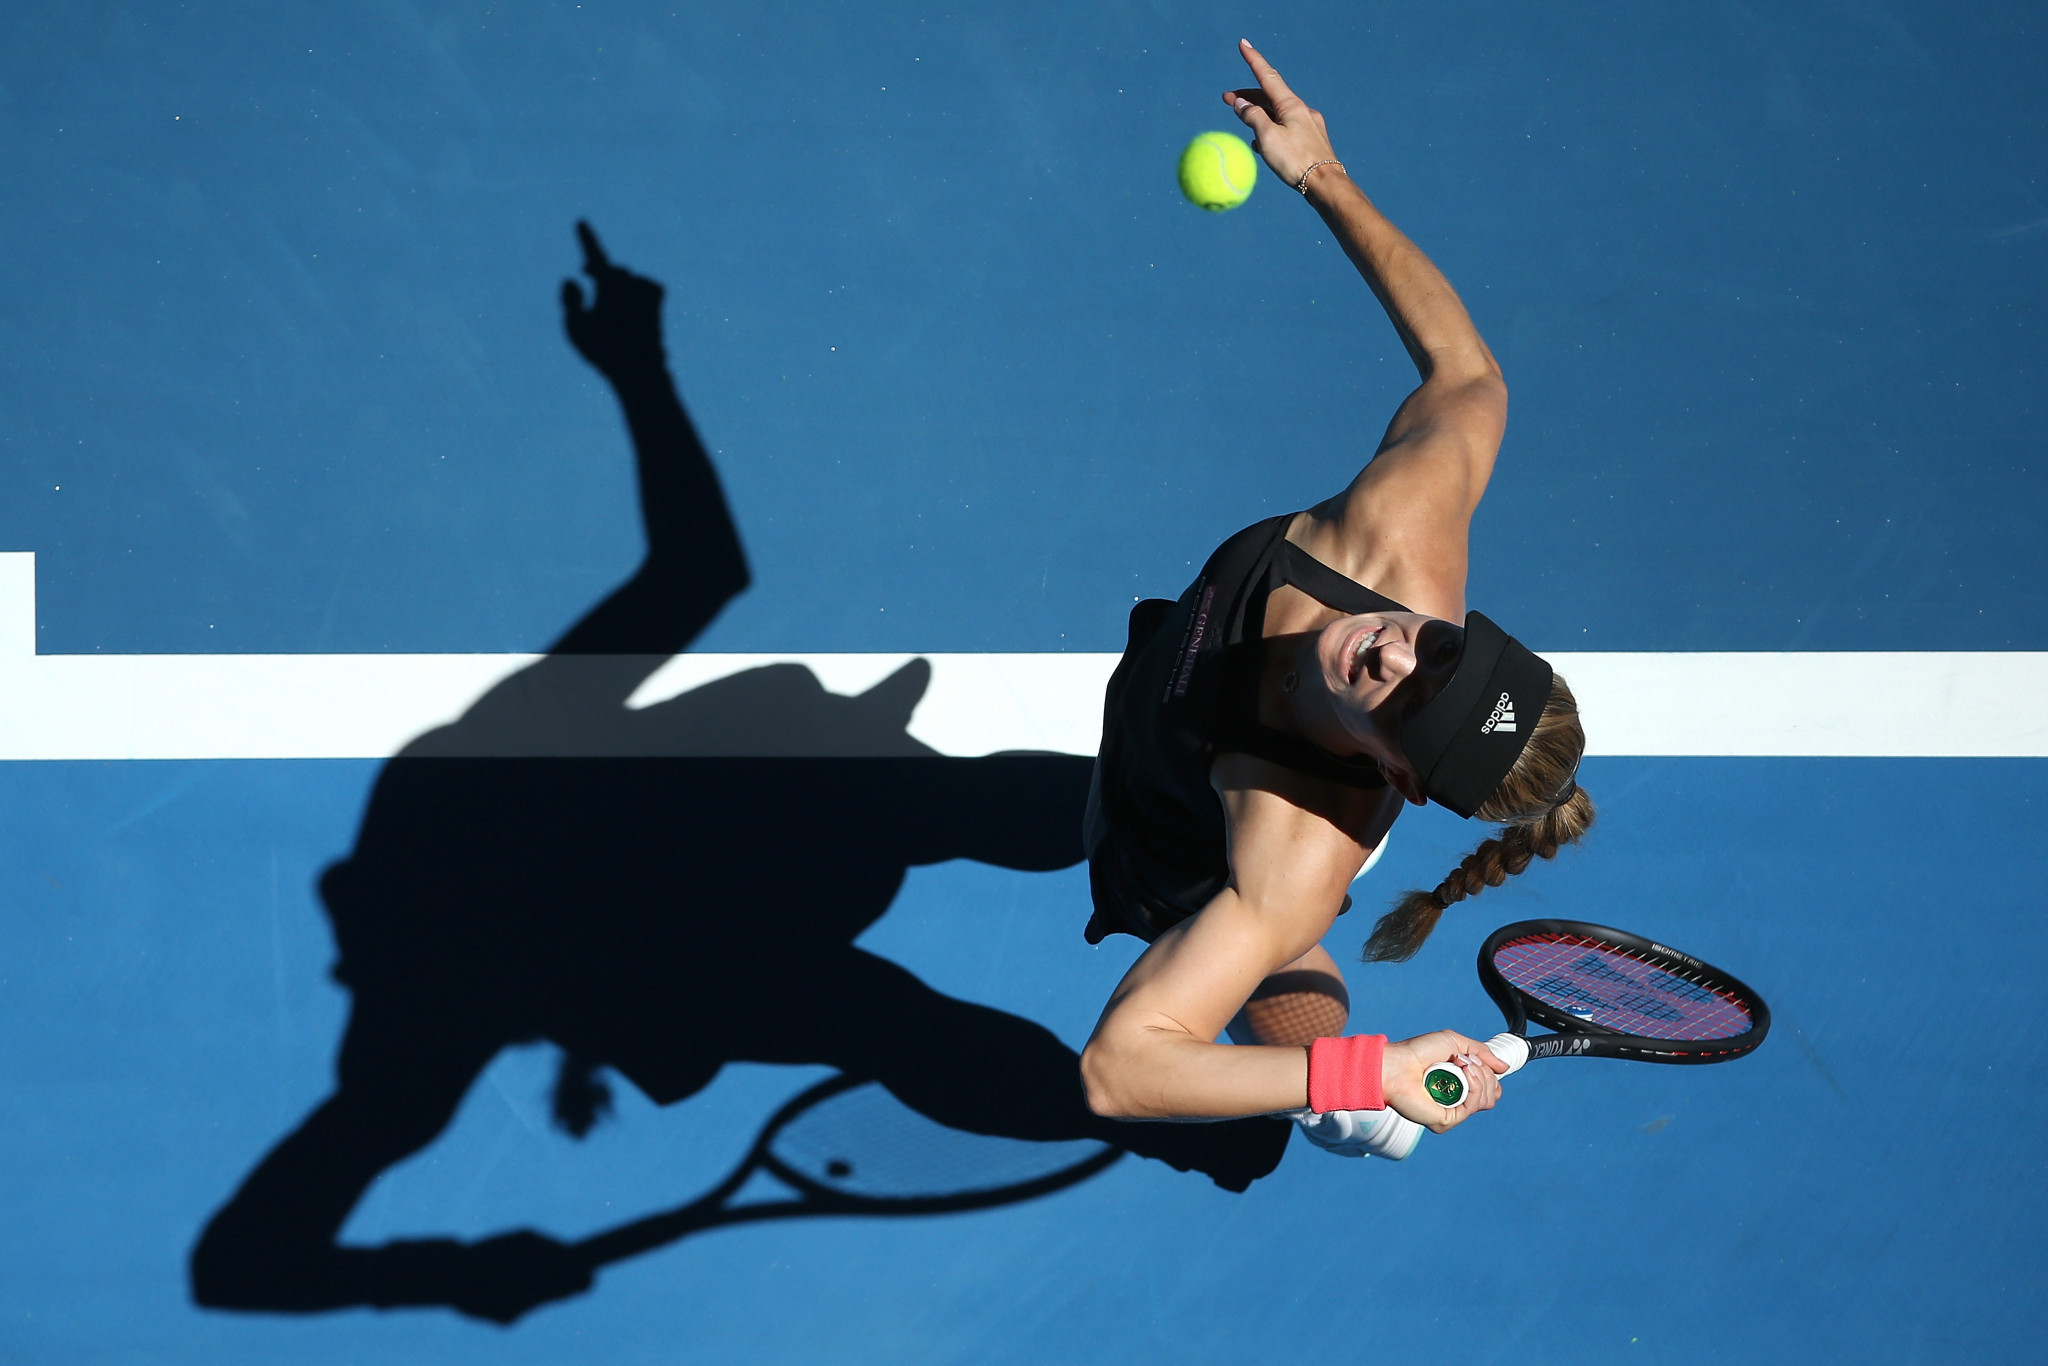 Germany's Angelique Kerber serves the ball in her victory against Garbine Muguruza in Germany and Spain's clash at the Hopman Cup in Perth ©Getty Image